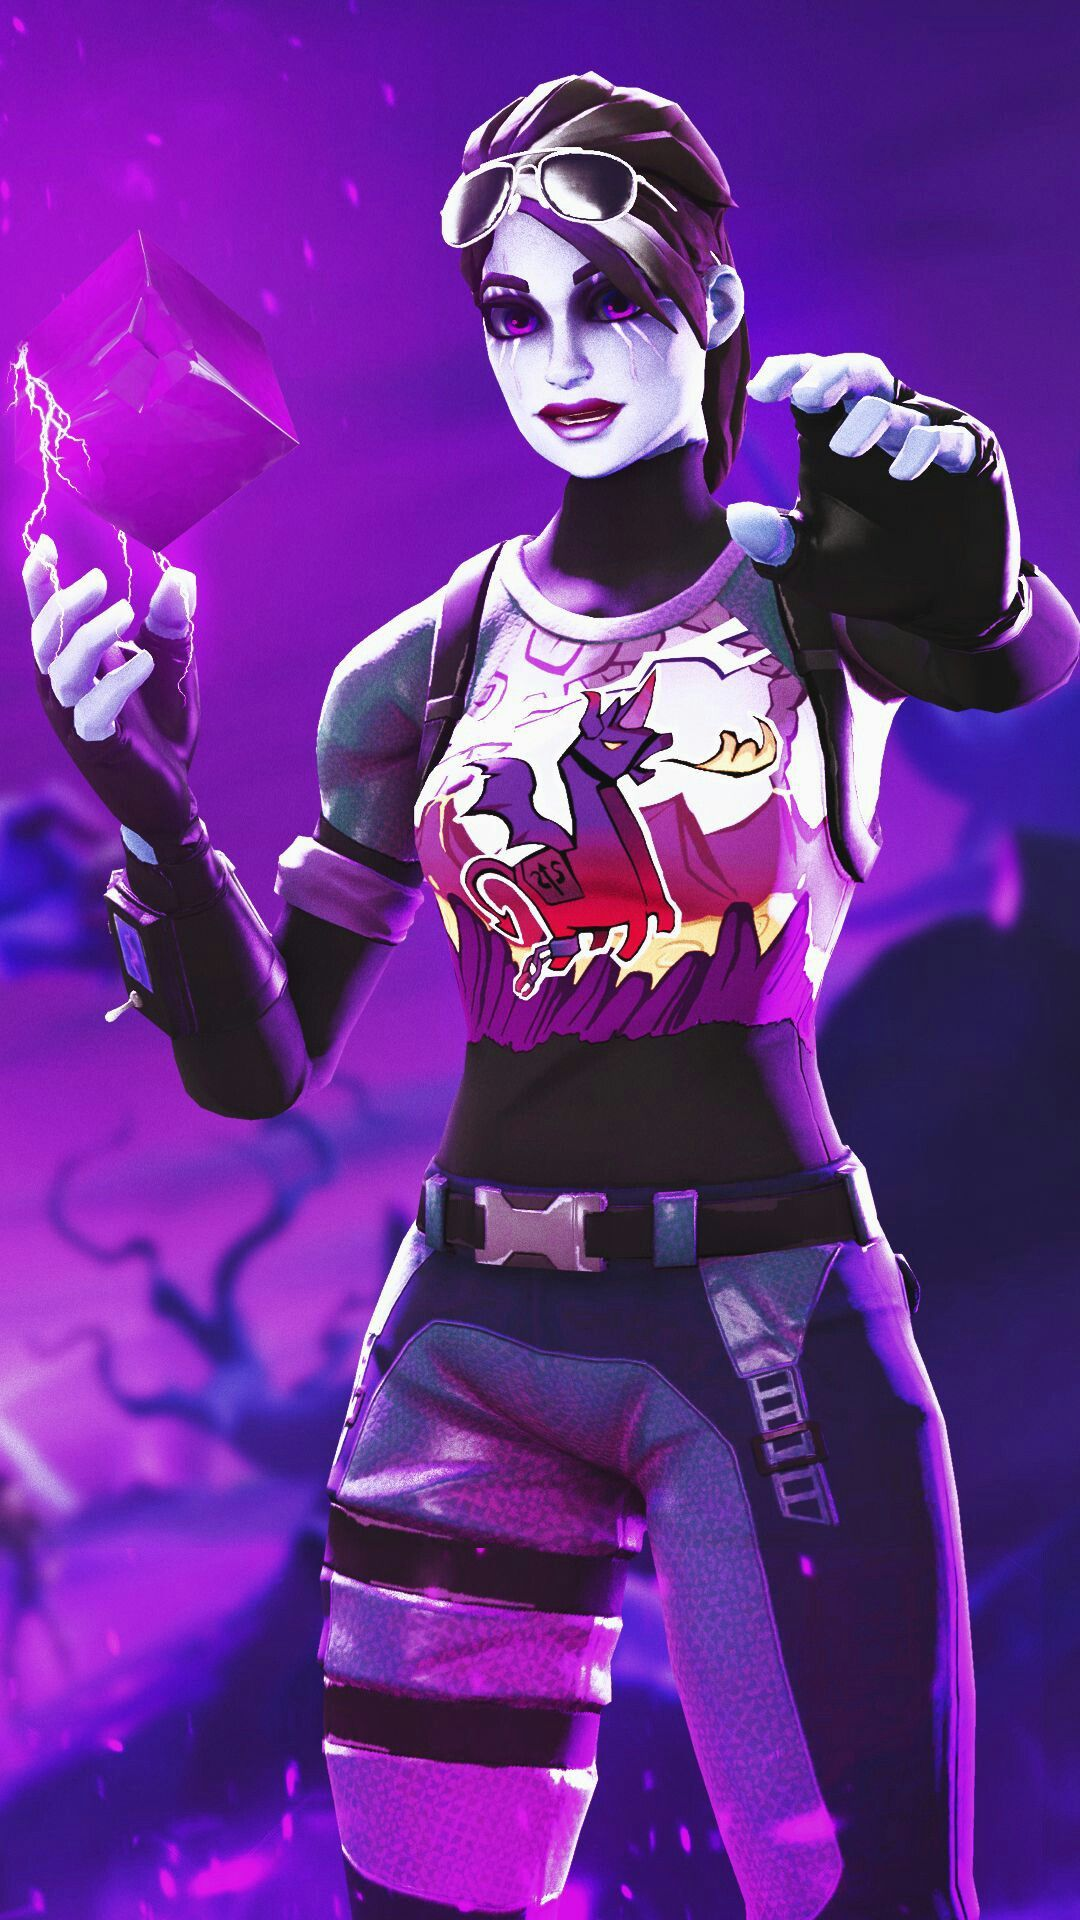 Pin by Ybn Pori on Fortnite Best gaming wallpapers Gaming 1080x1920